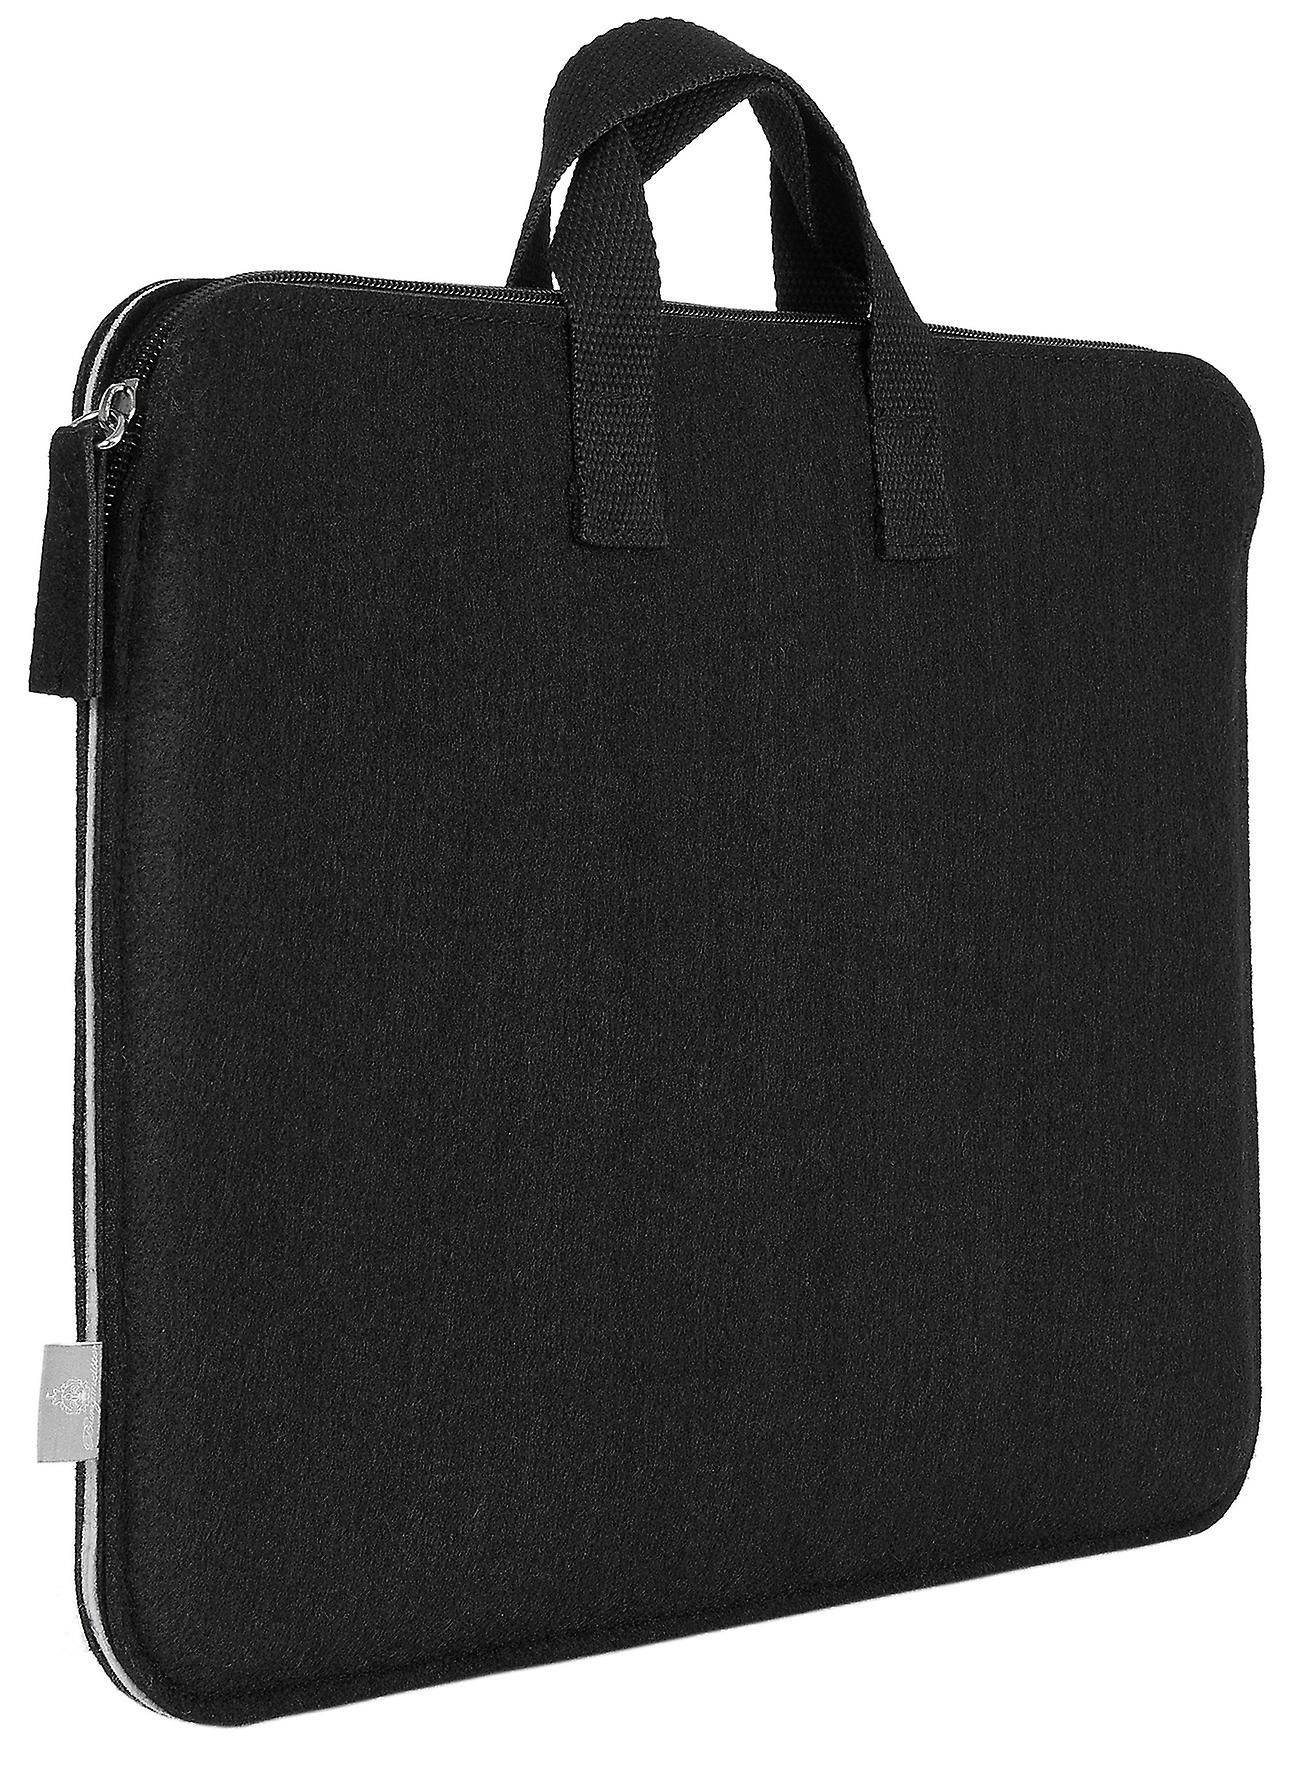 Burgmeister ladies/gents laptop bag felt, HBM3017-162